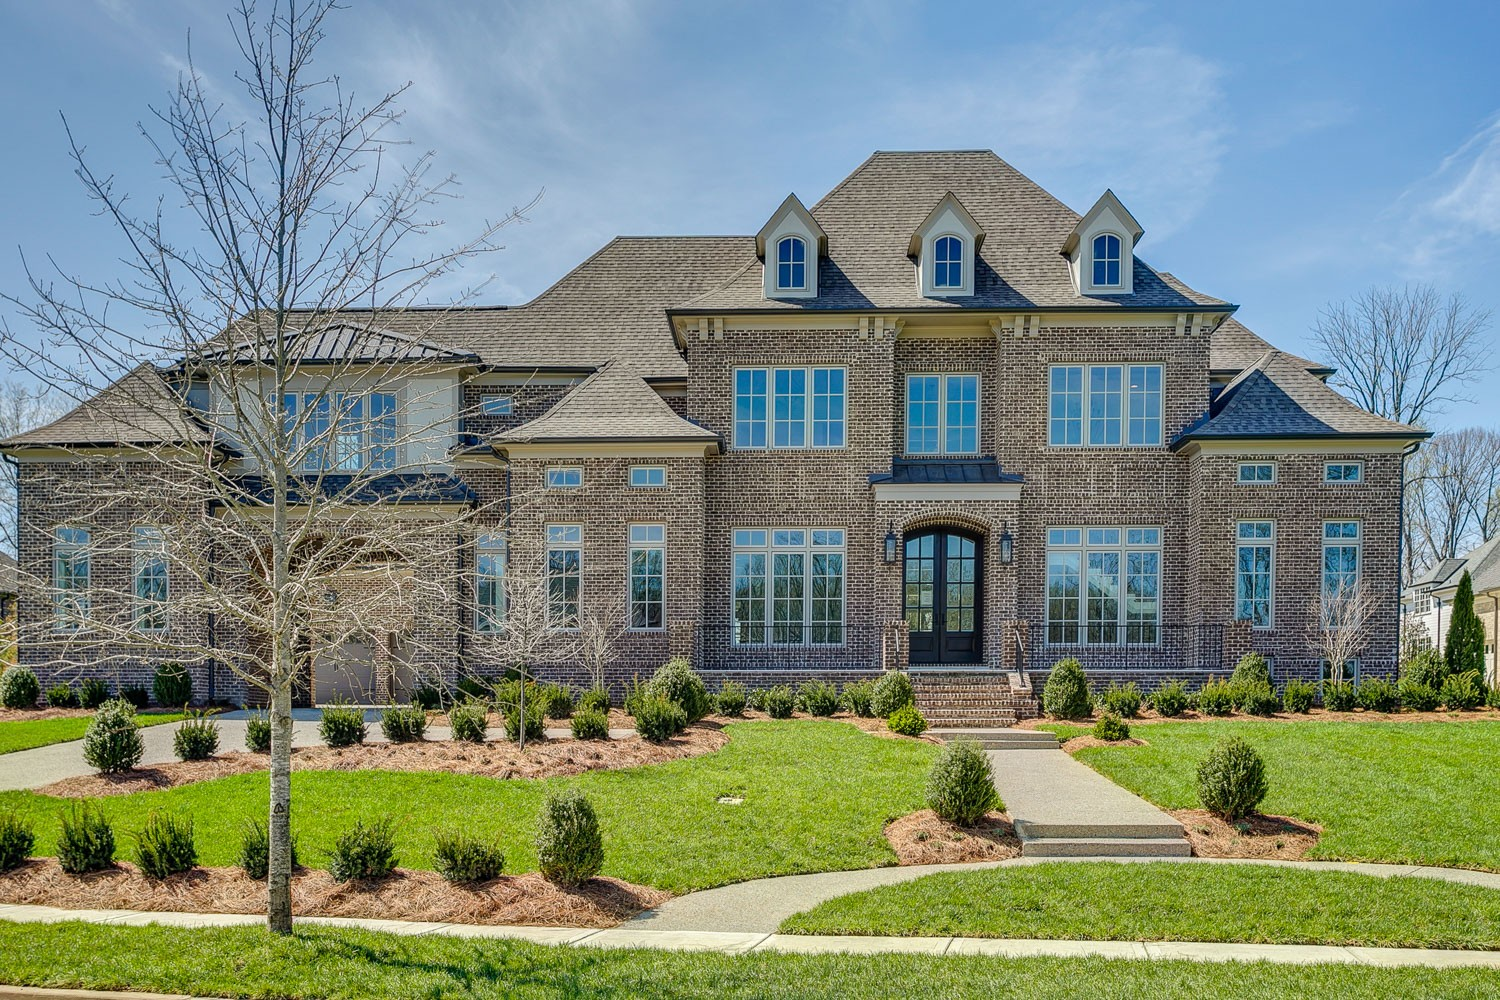 1461 Witherspoon Dr. #148, Brentwood, TN 37027 - Brentwood, TN real estate listing